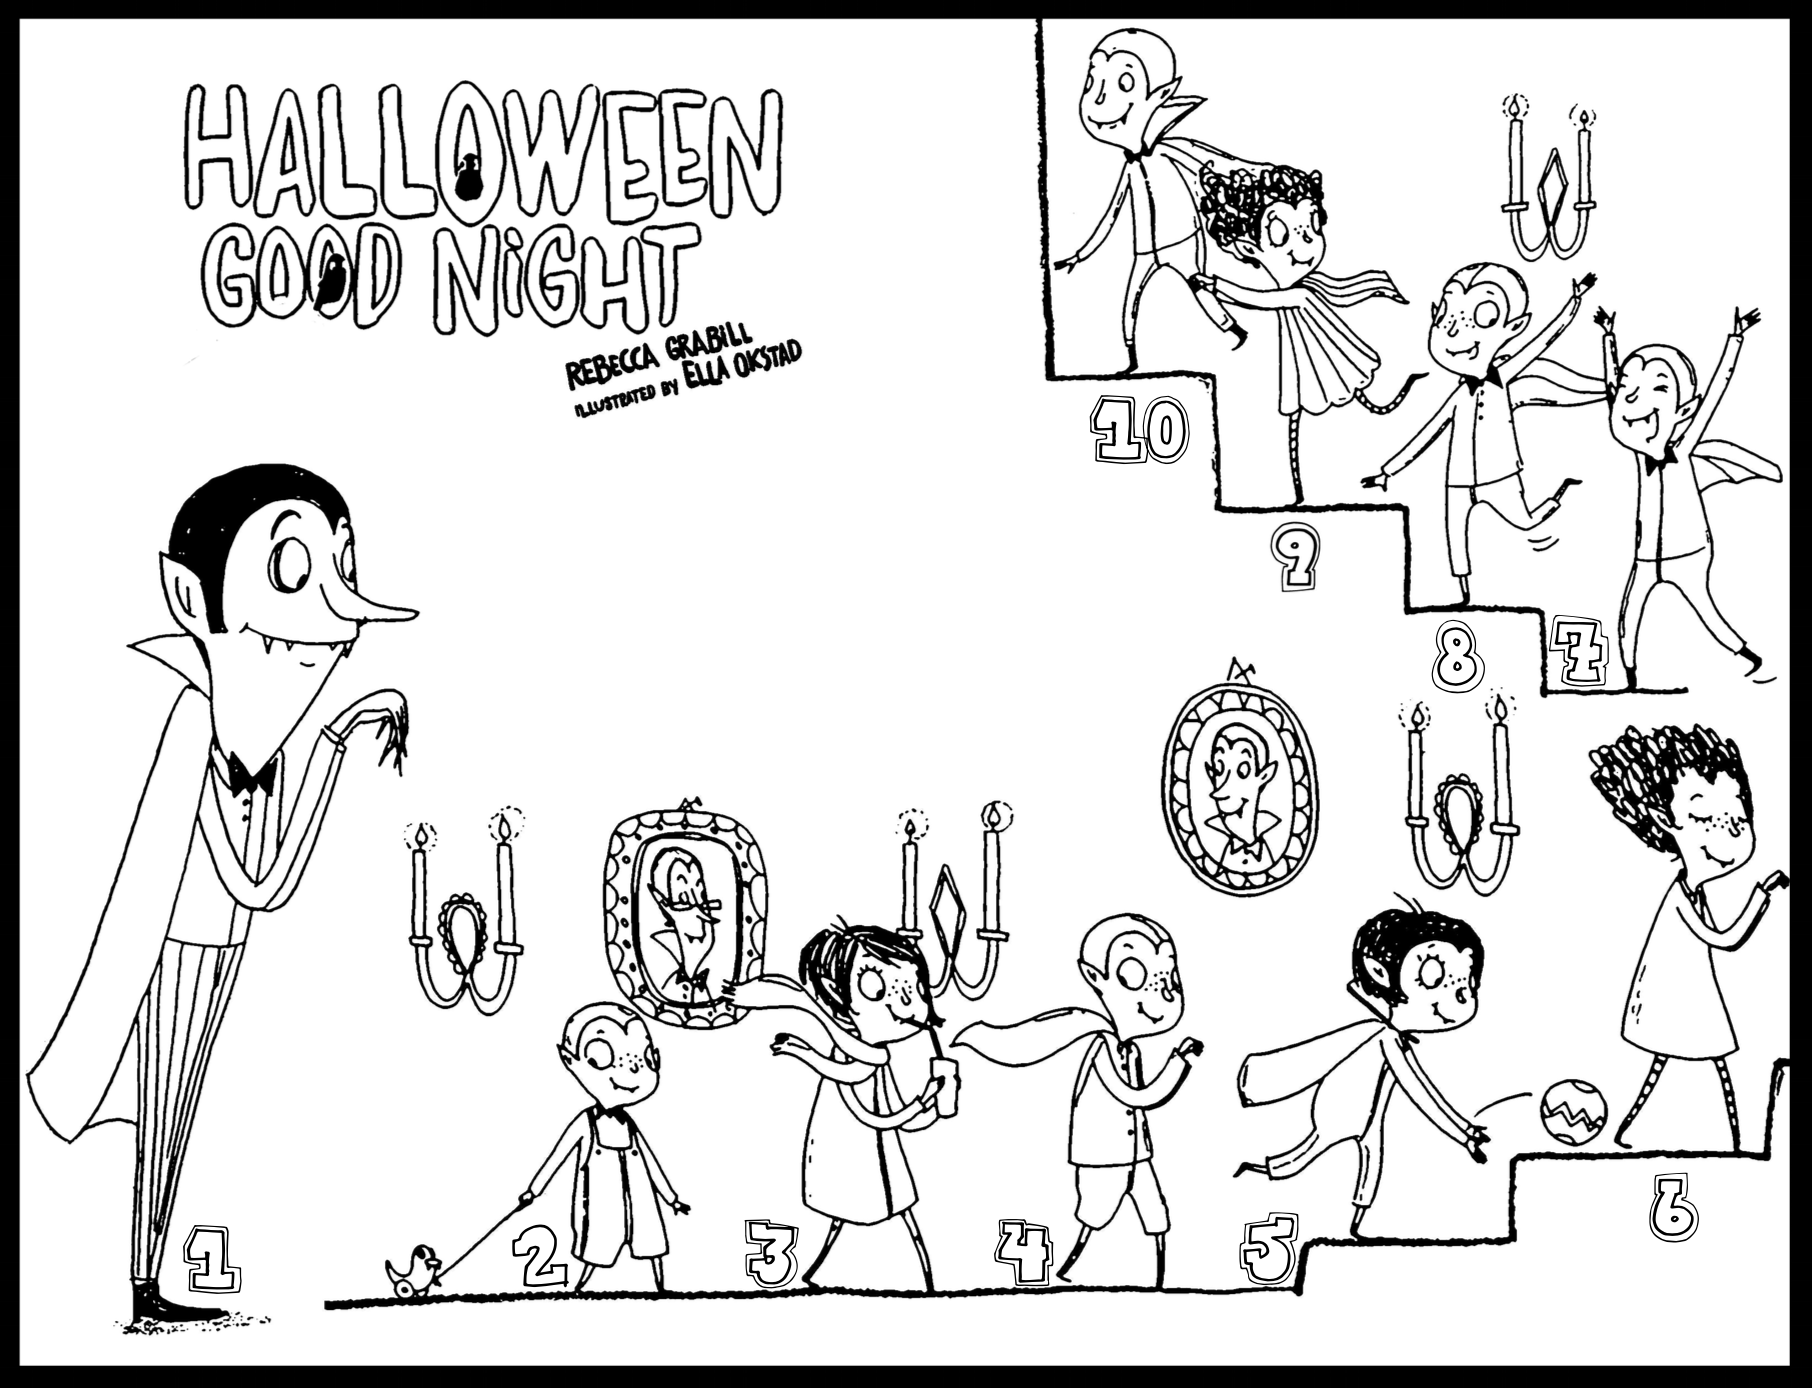 Count to 10 halloween coloring page